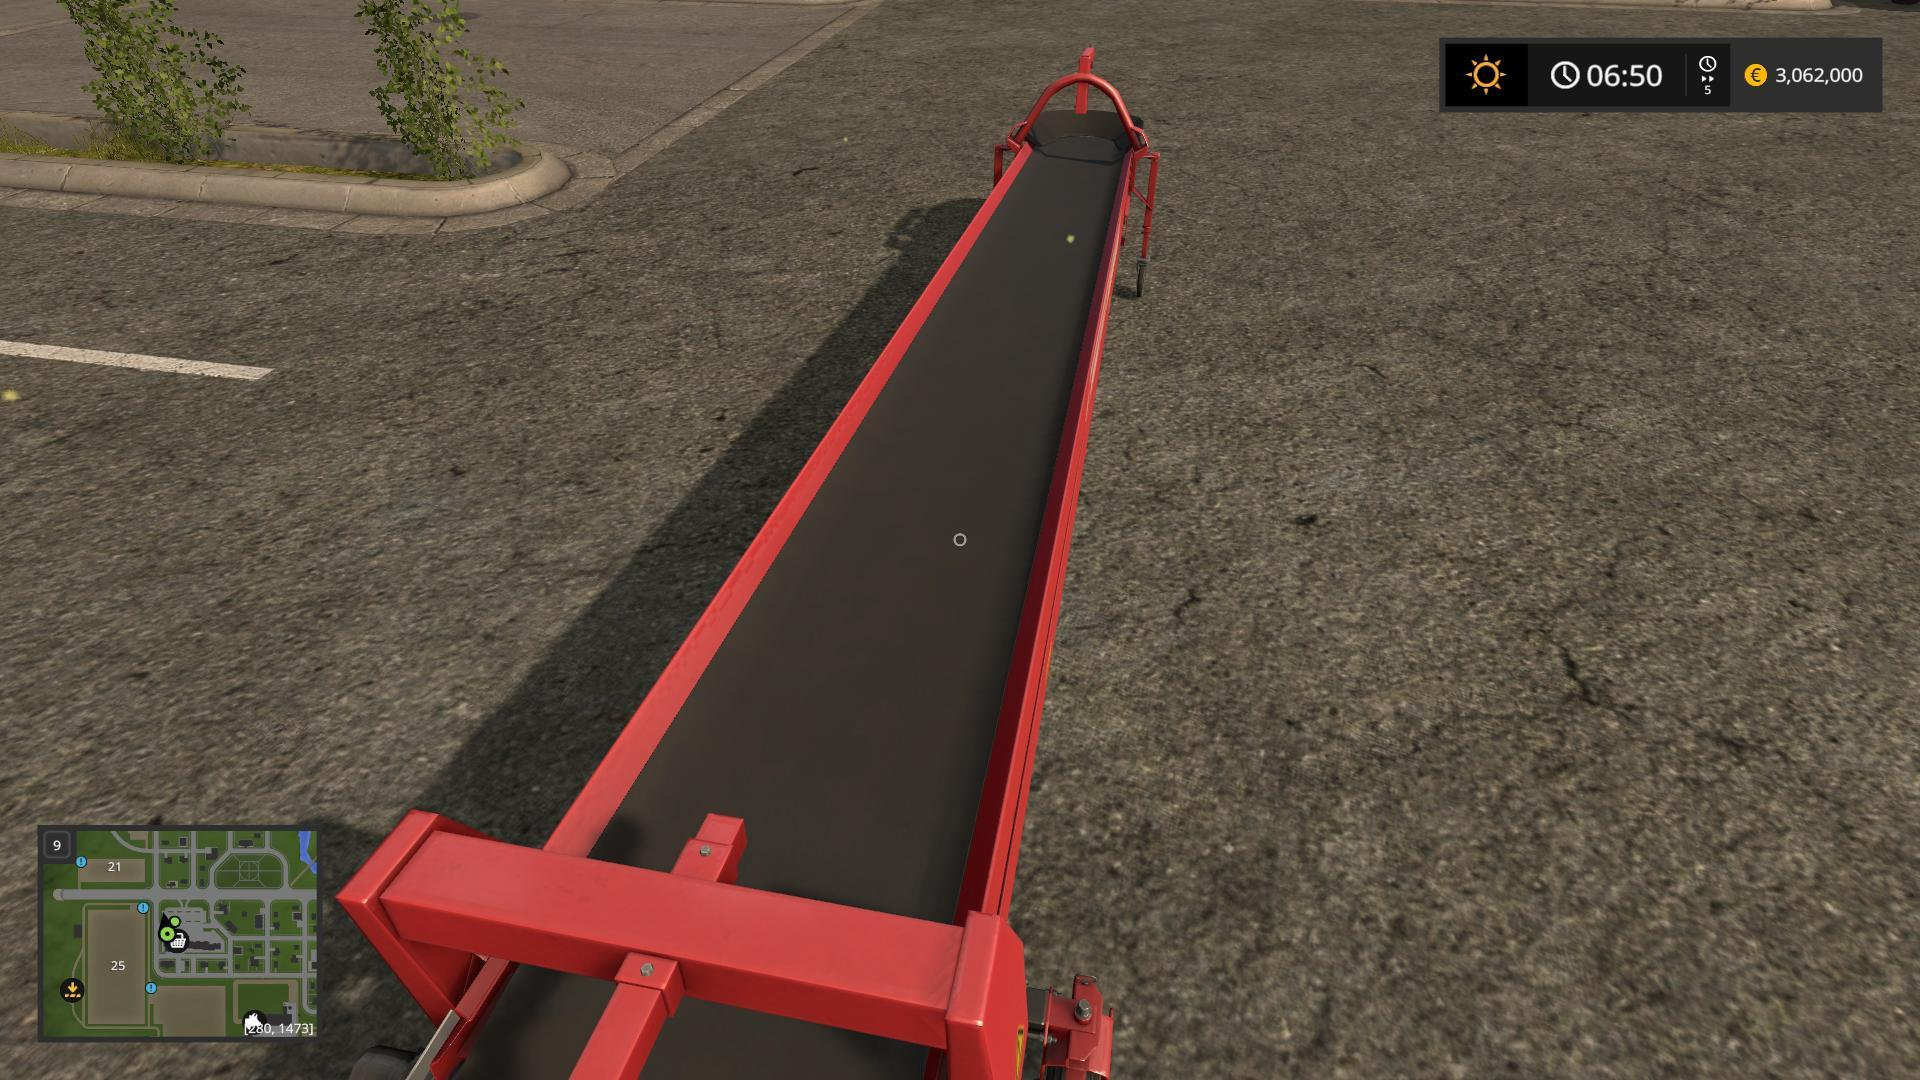 lizard-s-710-conveyor-belt-with-faster-overloaded-v-1-1-fs17-1